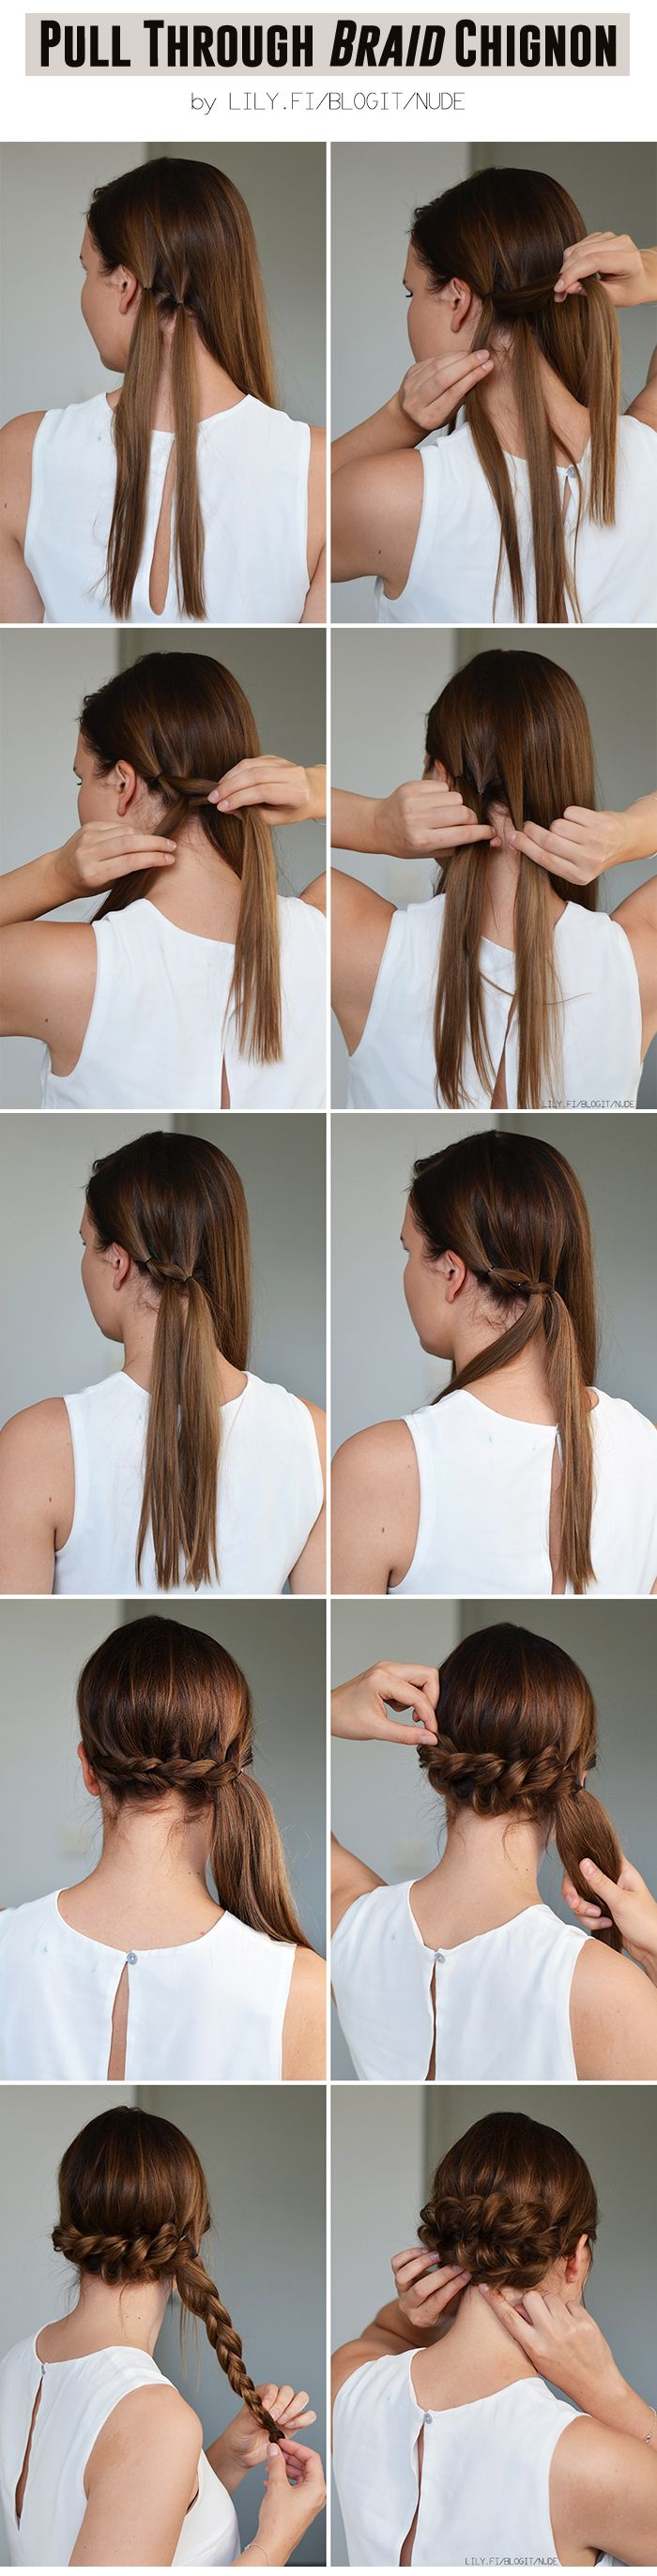 347 best Hair Tutorials & Ideas images on Pinterest